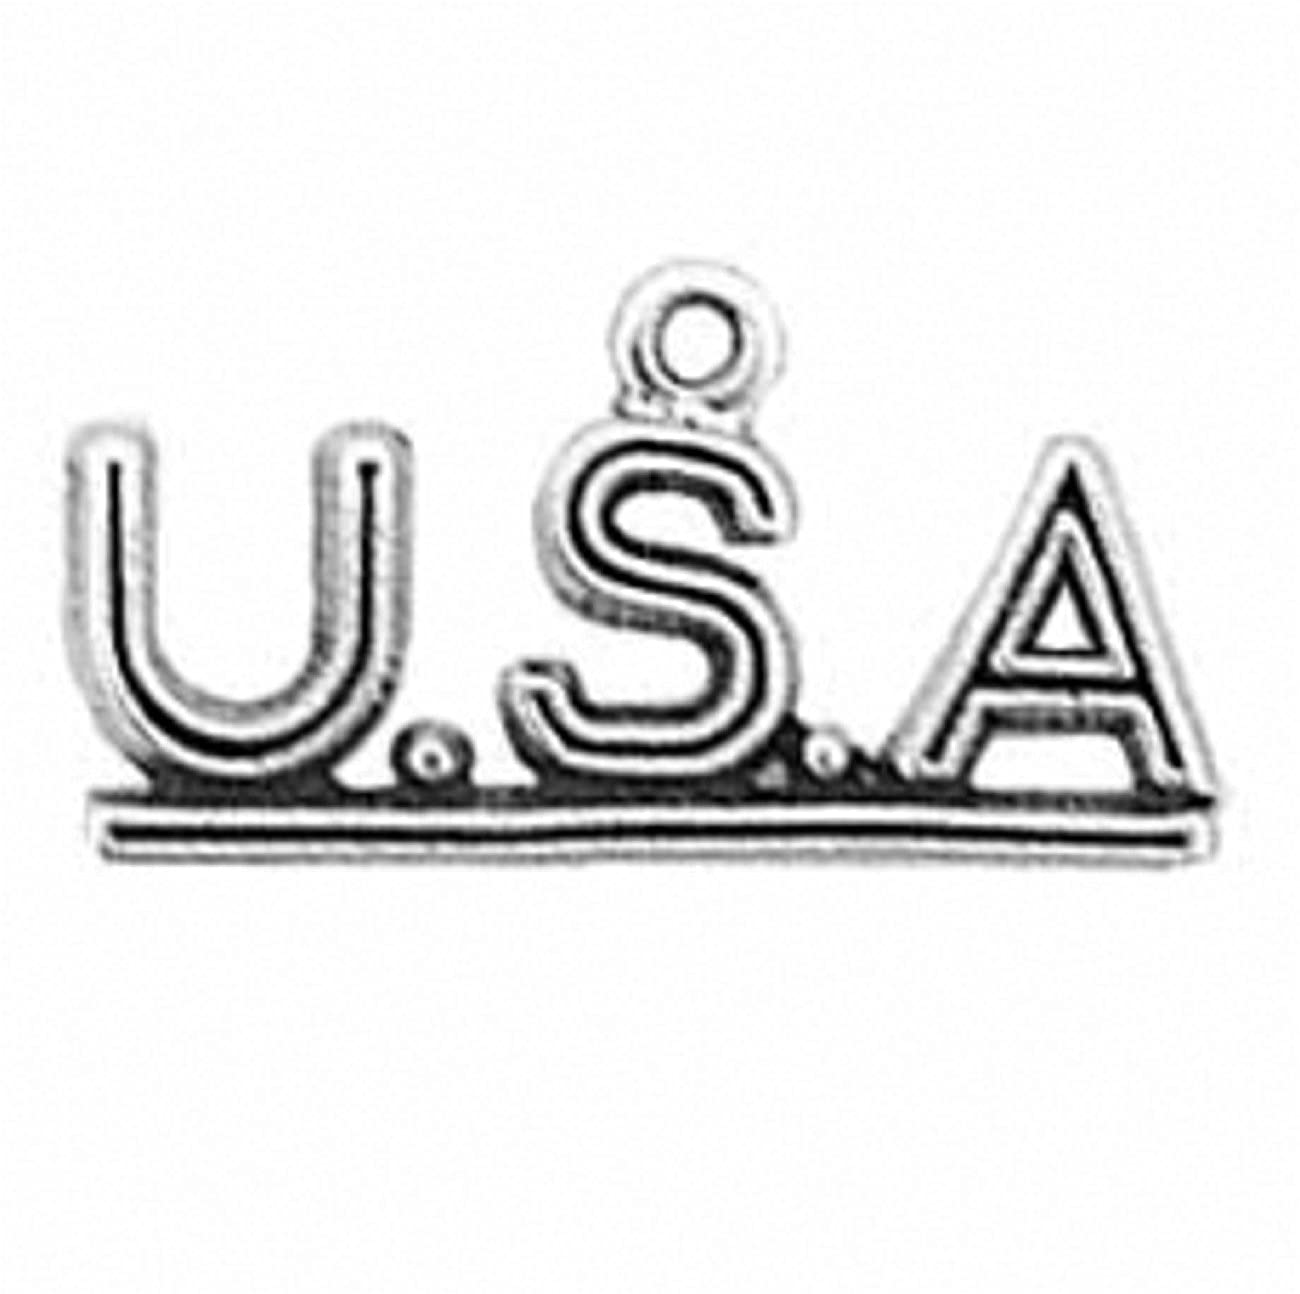 Sterling Silver 7 4.5mm Charm Bracelet With Attached Abbreviated United States Of America USA Charm